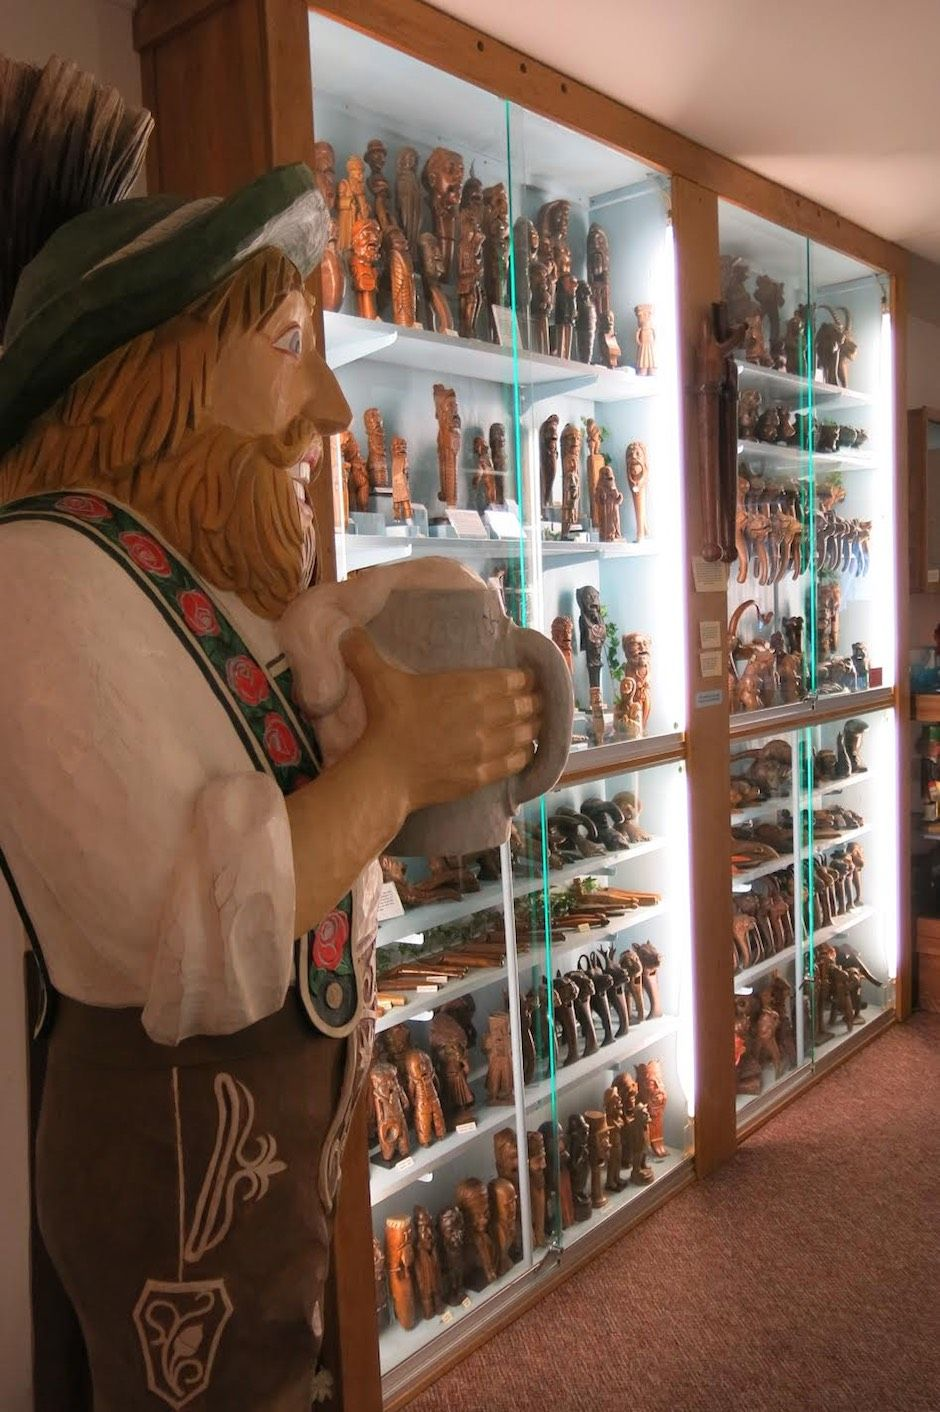 The Leavenworth Nutcracker Museum